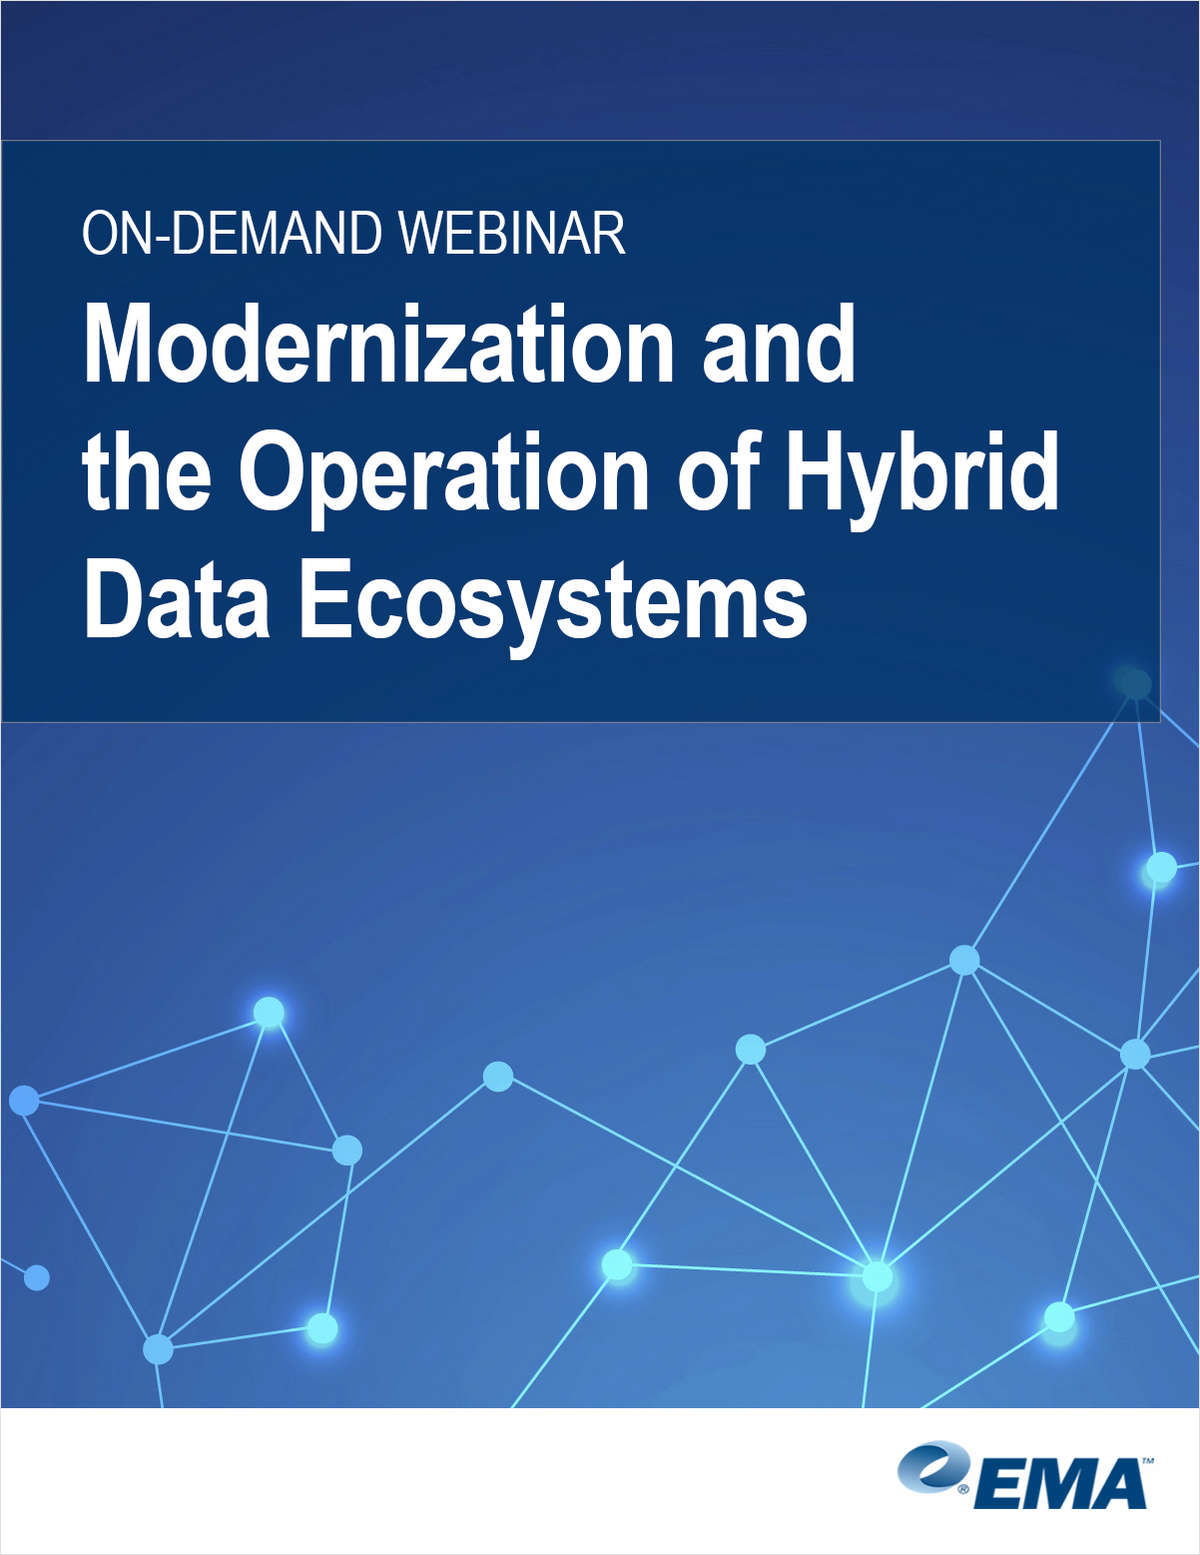 ON-DEMAND RESEARCH WEBINAR:  Modernization and the Operation of Hybrid Data Ecosystems